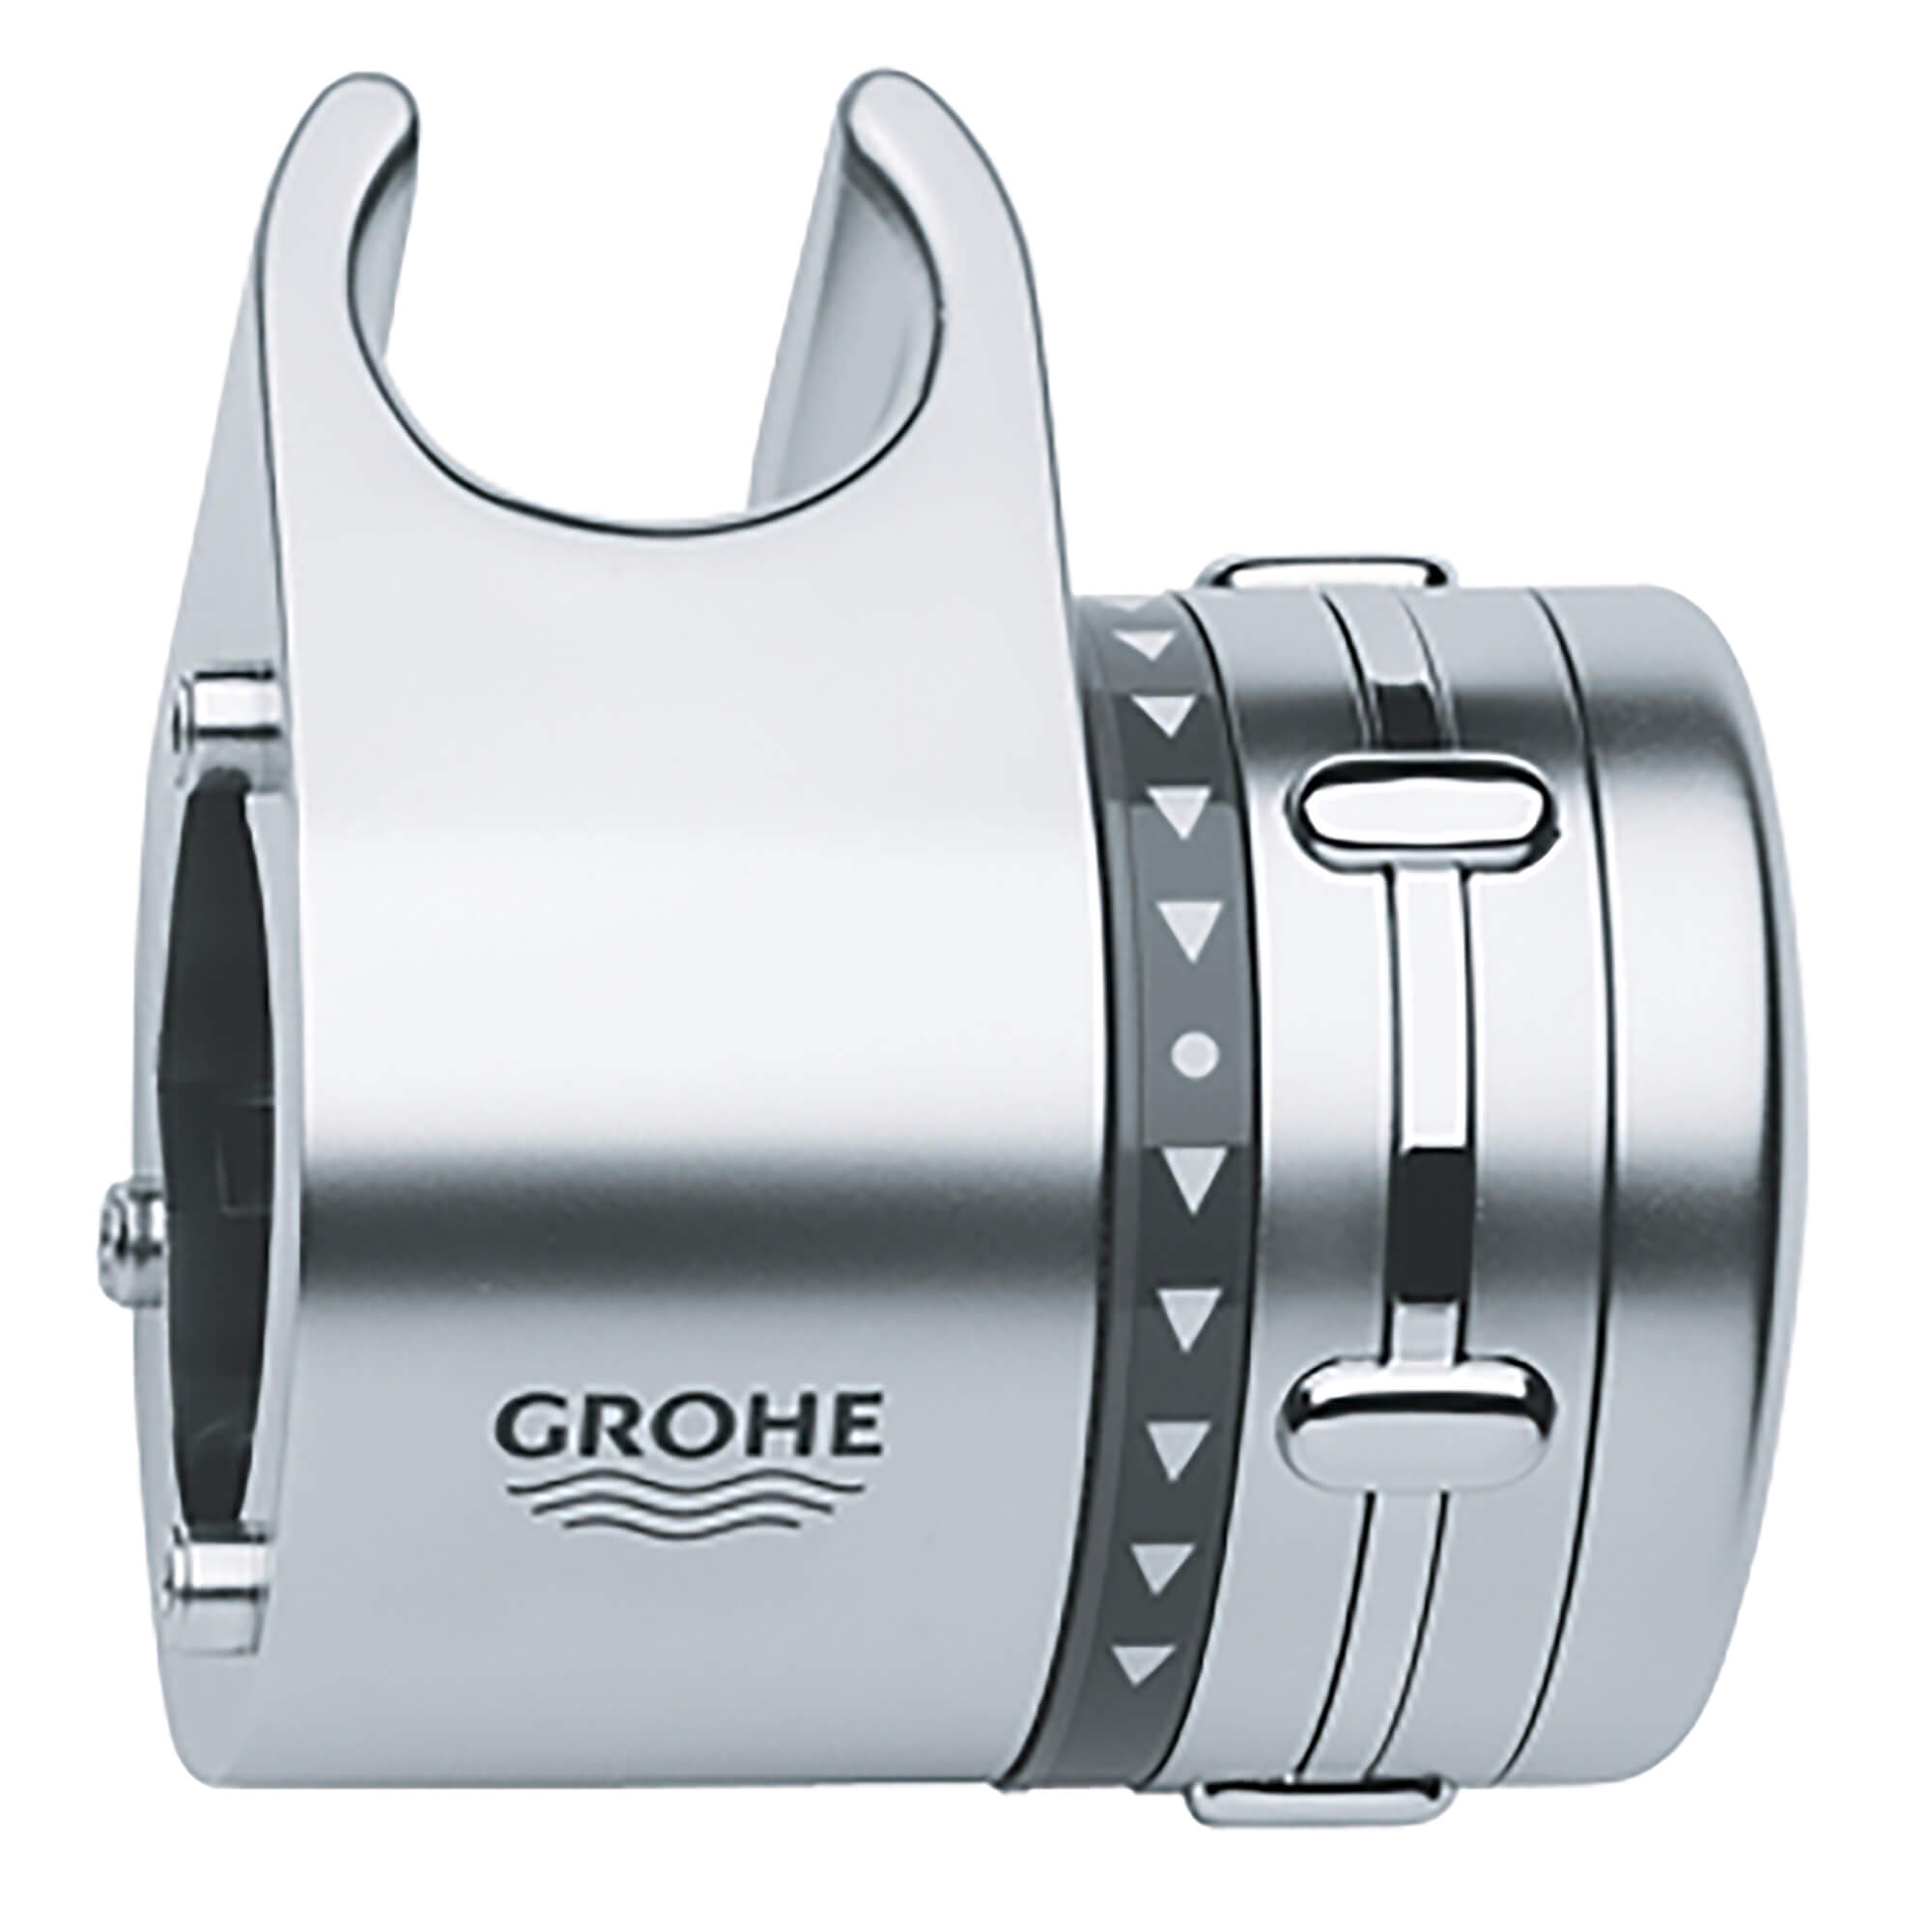 Volume Control Handle For Thermostatic Valve GROHE CHROME/MATTE CHROME